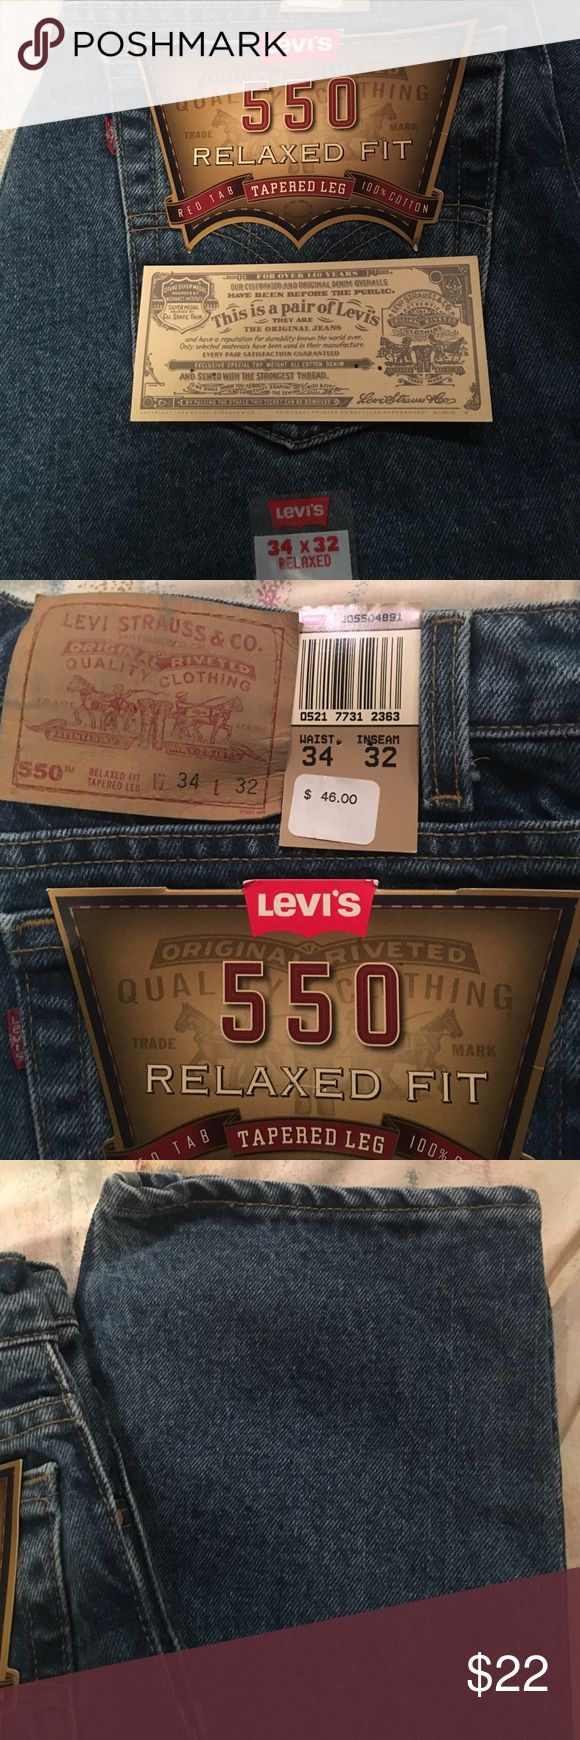 Men's Levi jeans. NWT. Brand new pair of men's Levi Jeans. Medium wash. Relaxed fit. Tapered leg. Levi's Jeans Straight Leg